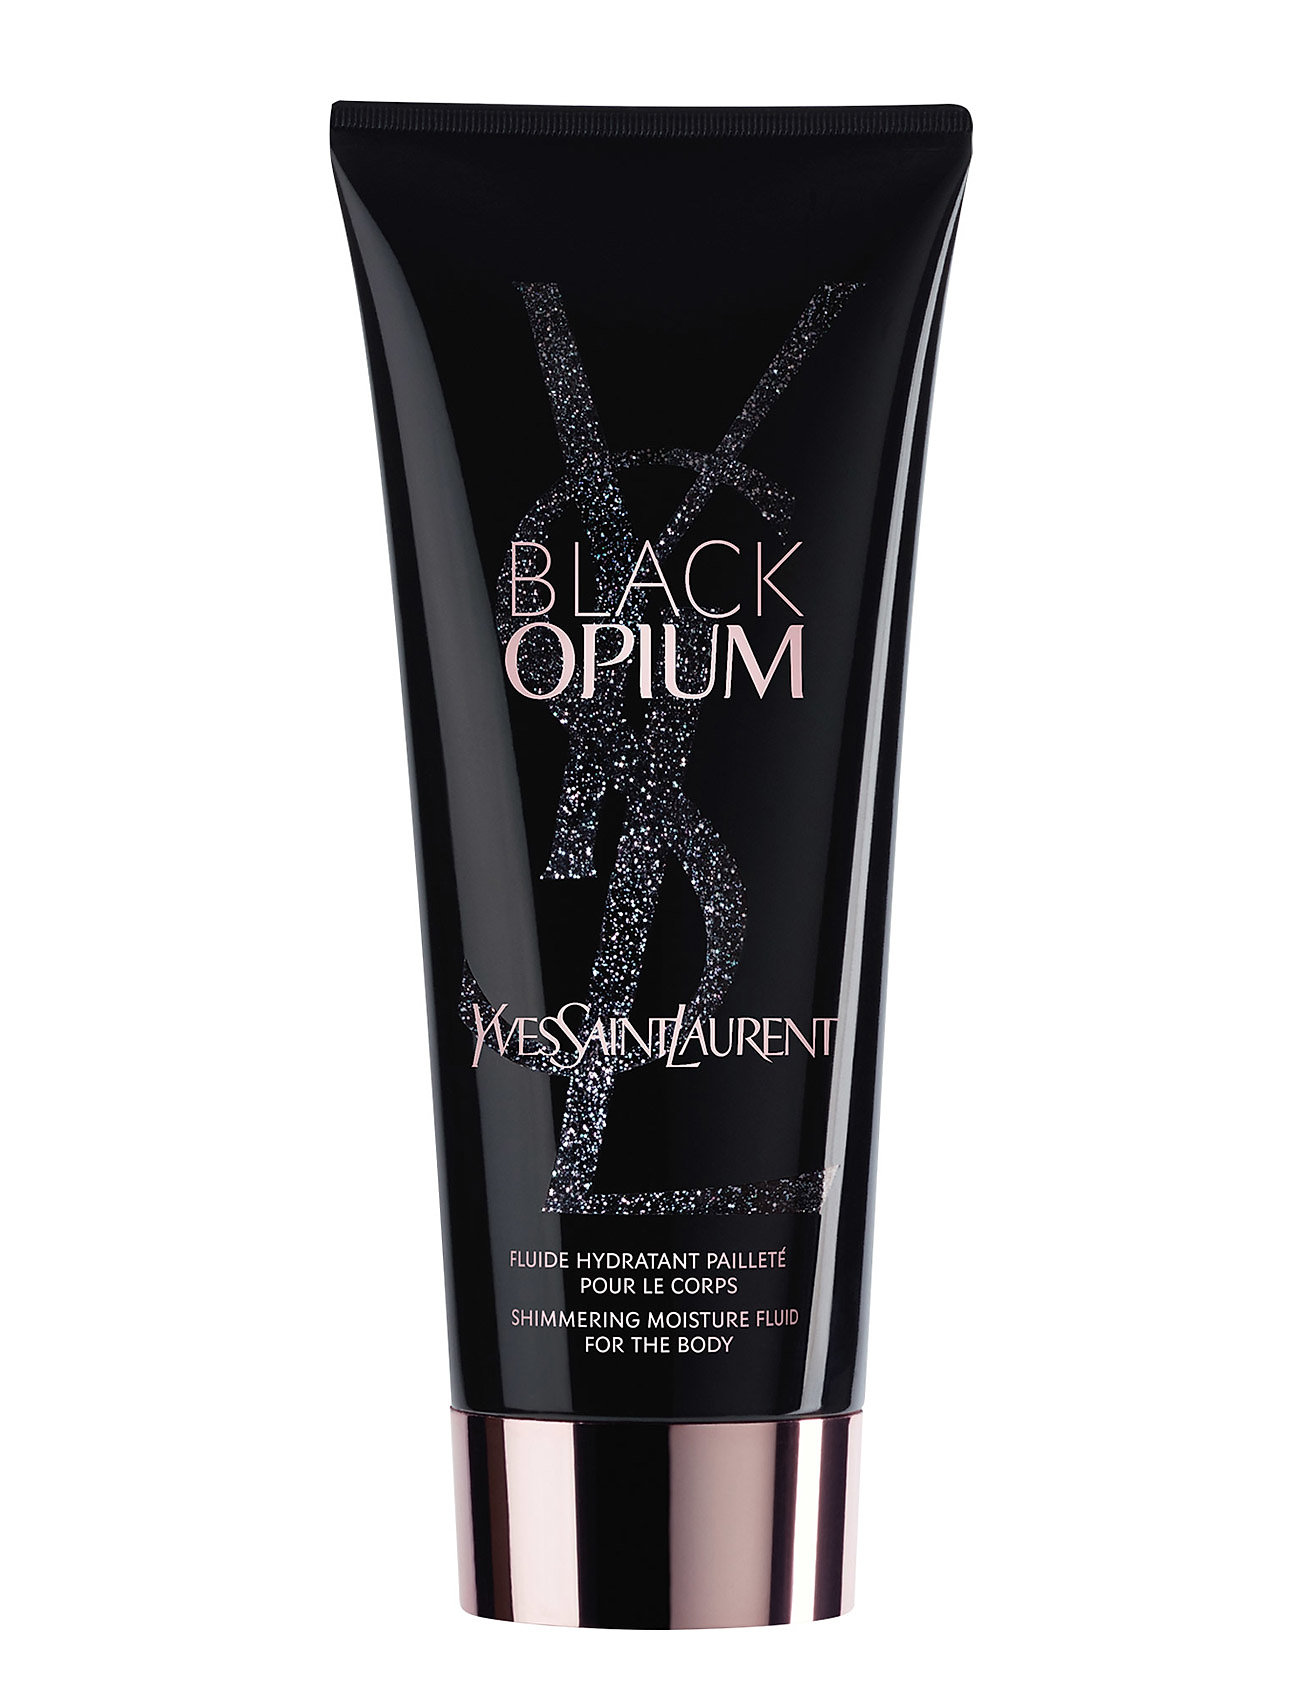 yves saint laurent – Black opium body lotion 200 ml fra boozt.com dk